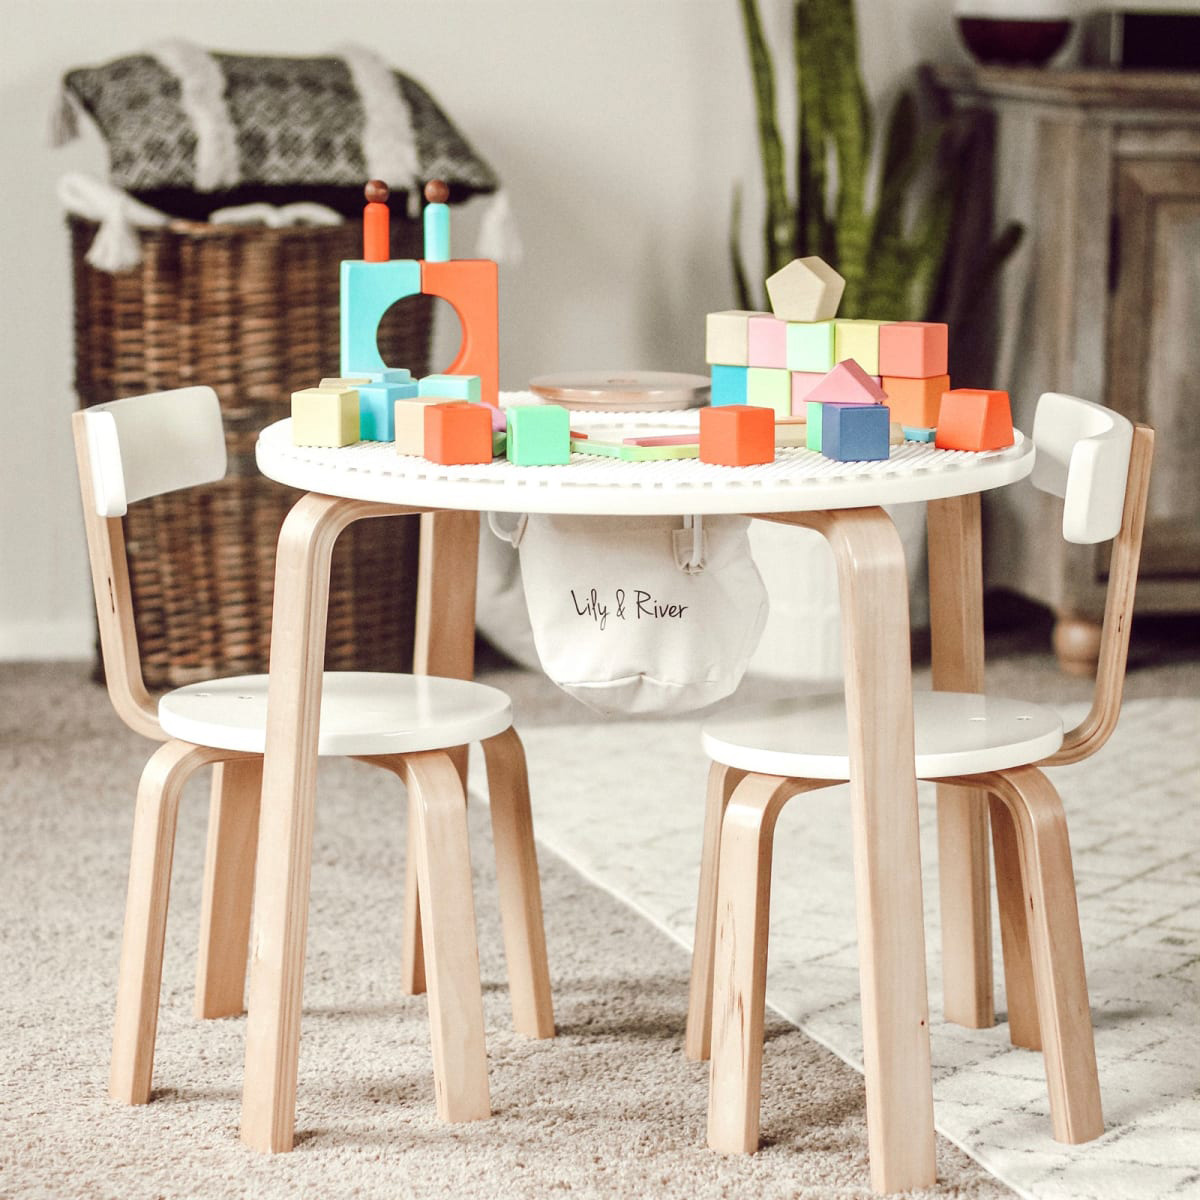 Lily & River Little Creator Table